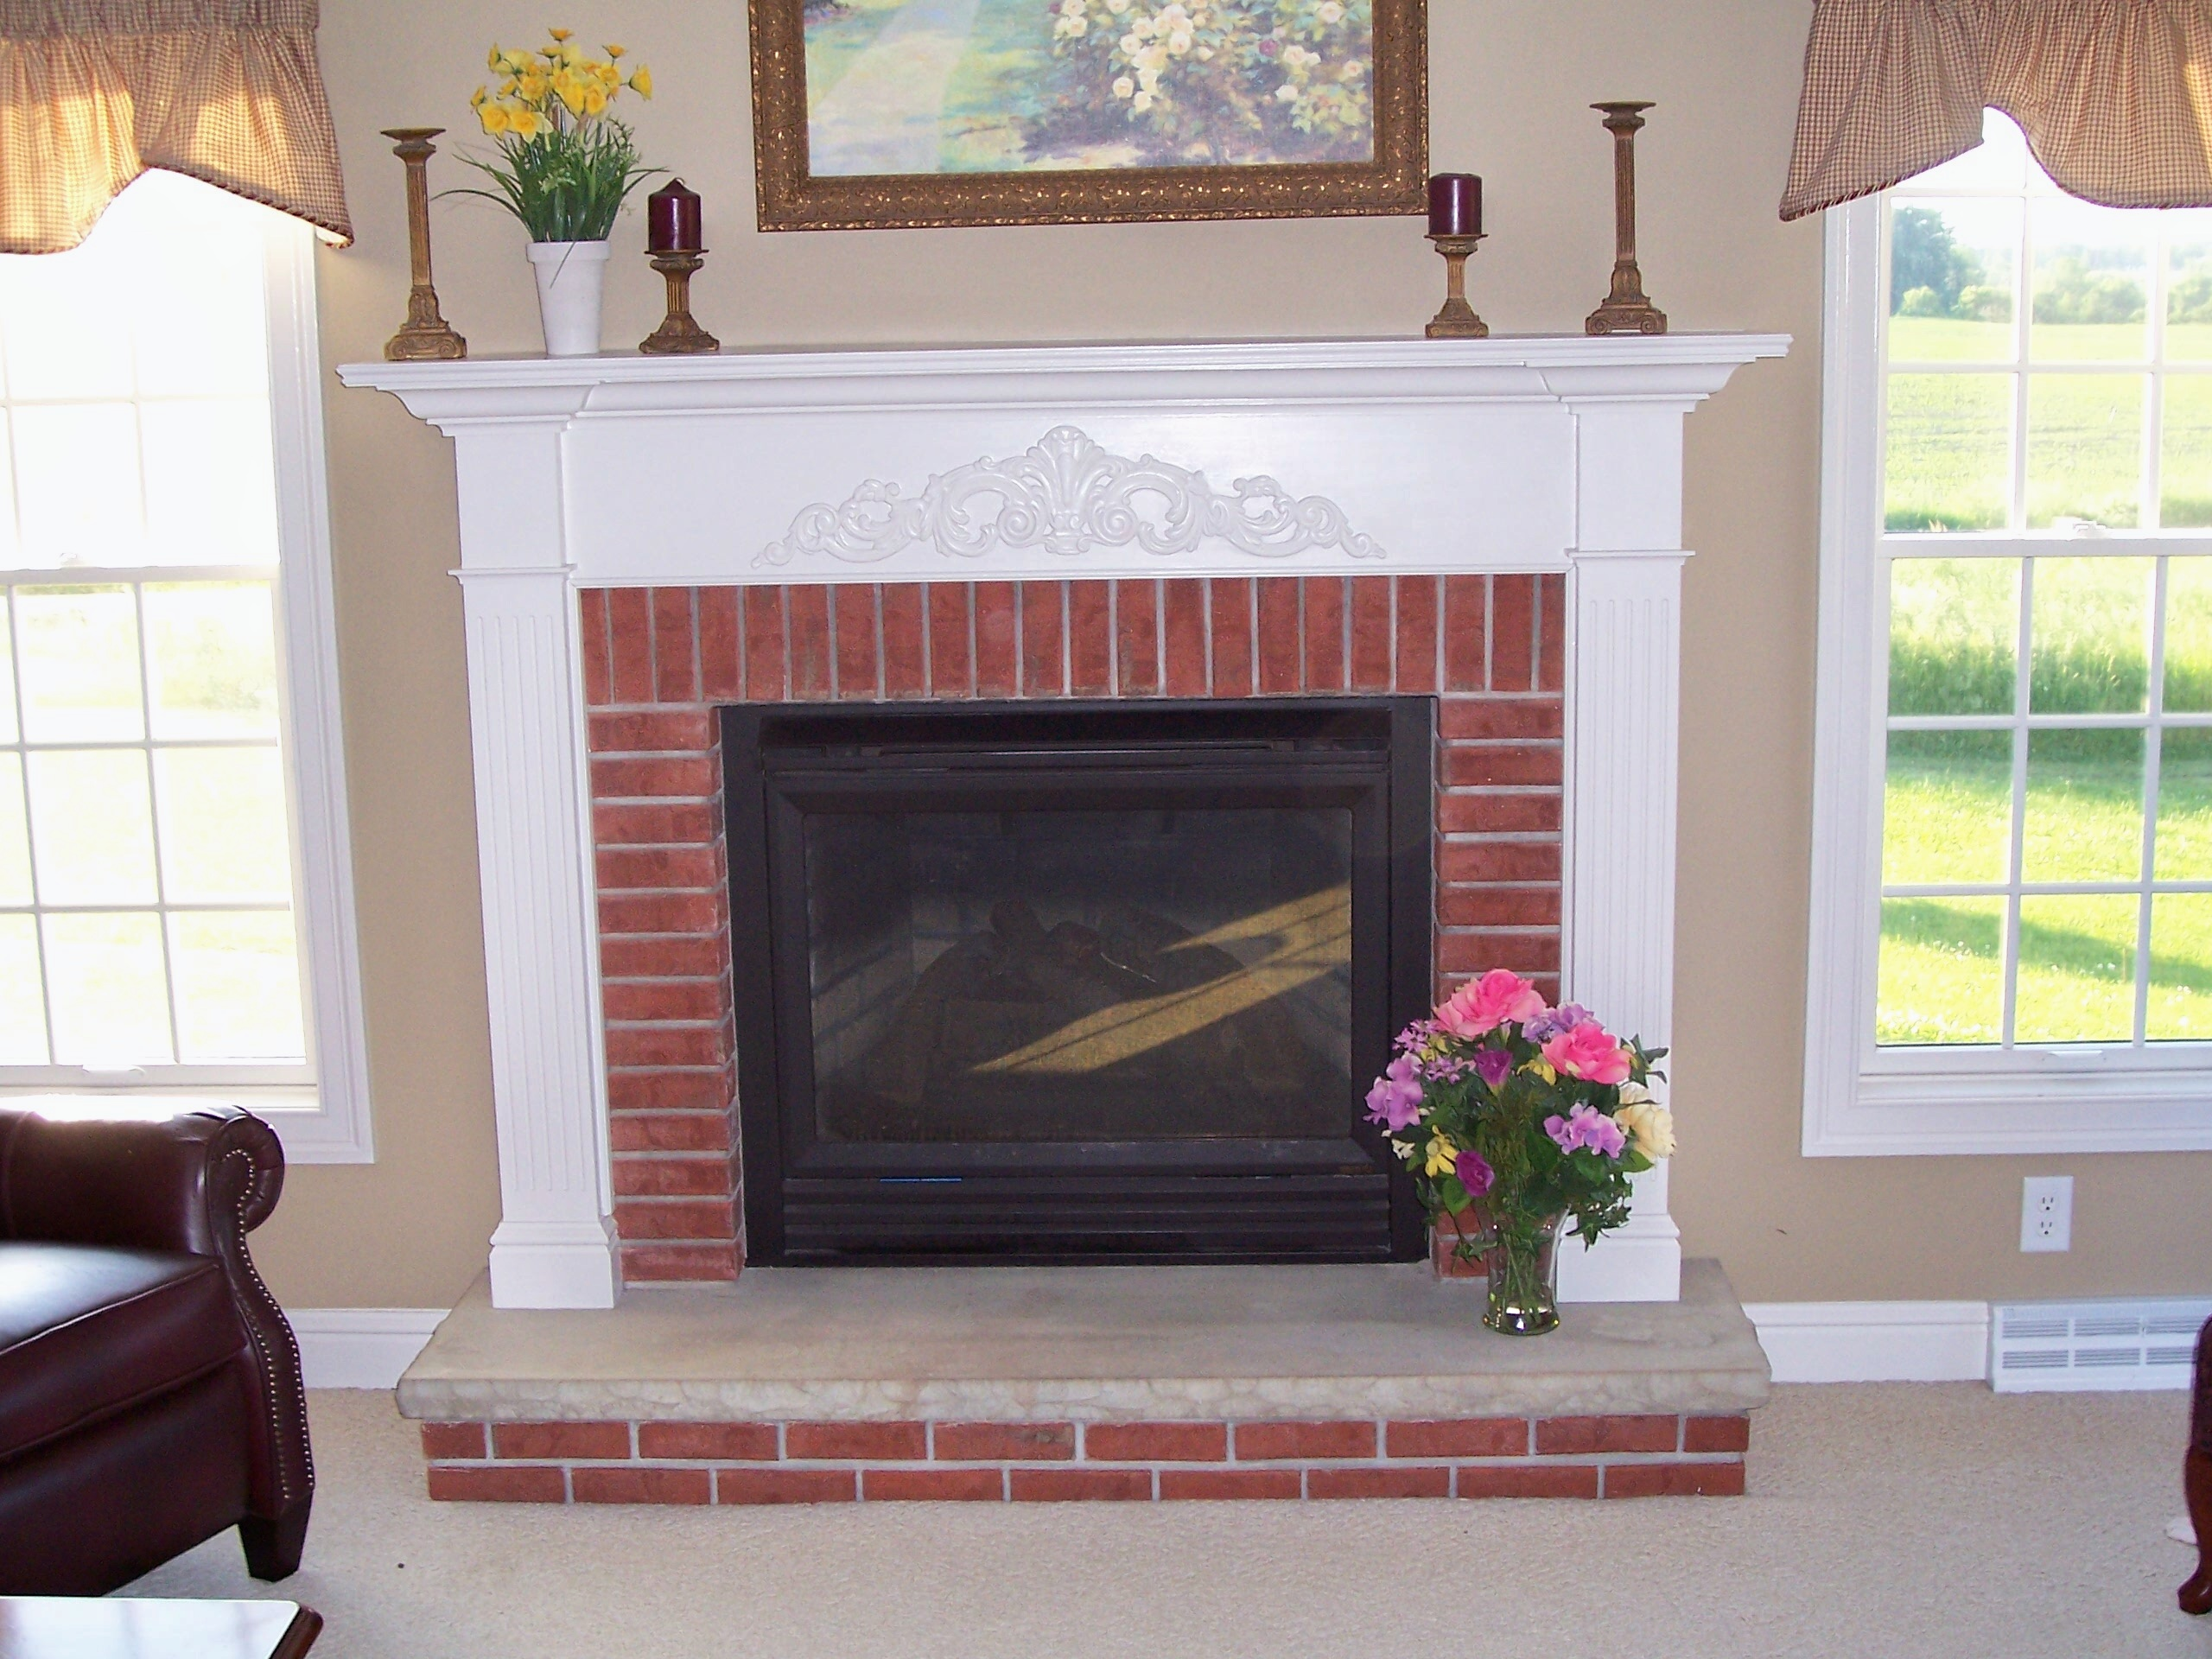 White Mantel And Trim Around Brick Fireplace